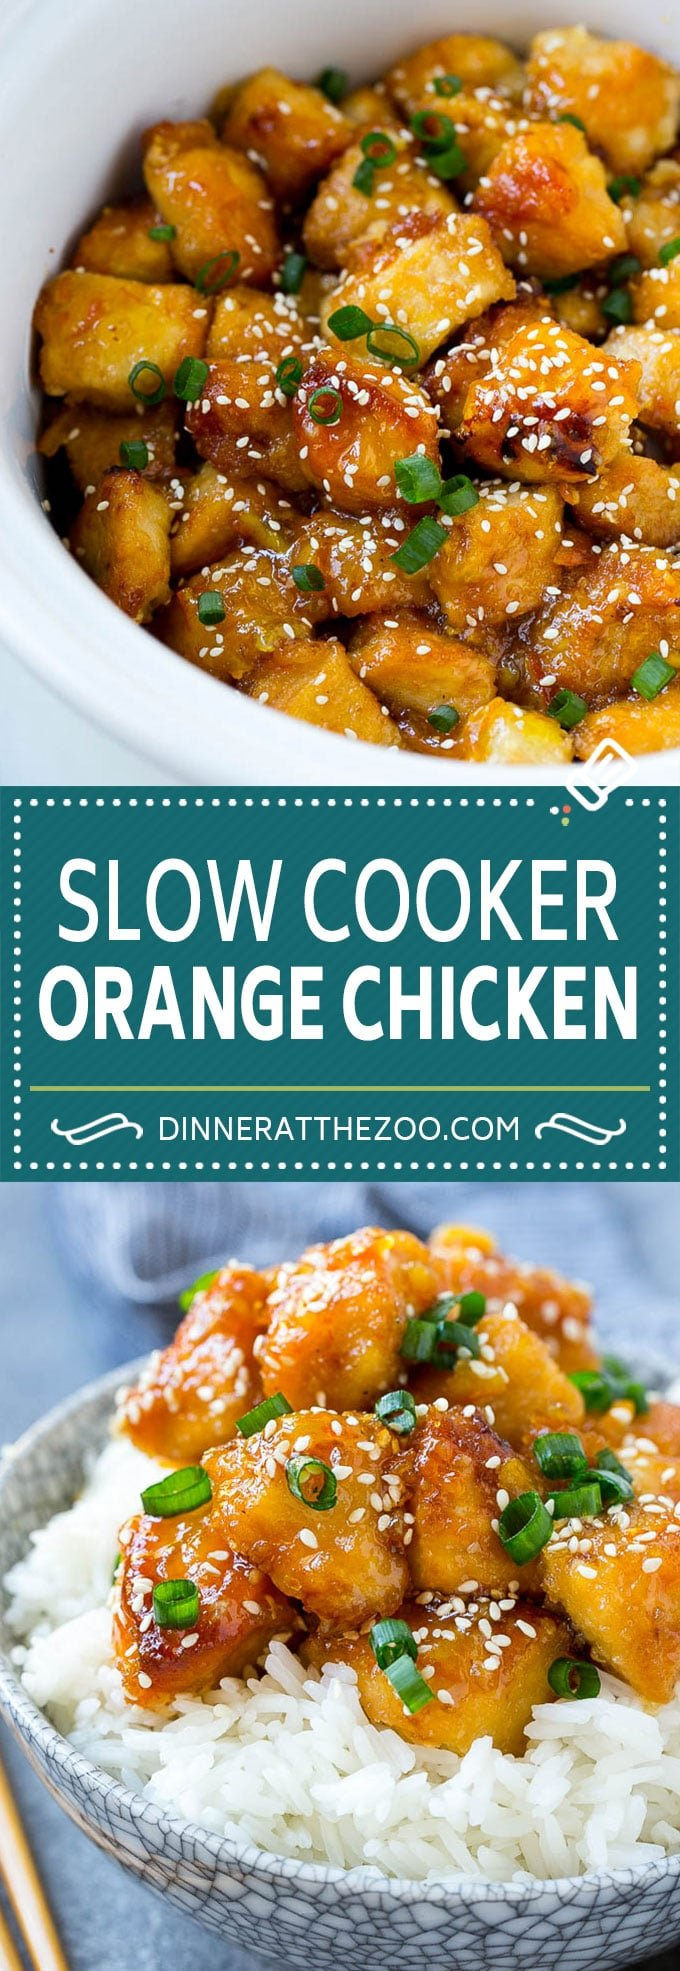 Slow Cooker Orange Chicken Recipe | Copycat Orange Chicken | Crock Pot Orange Chicken | Slow Cooker Chicken Recipe #orange #chicken #orangechicken #slowcooker #crockpot #dinner #dinneratthezoo